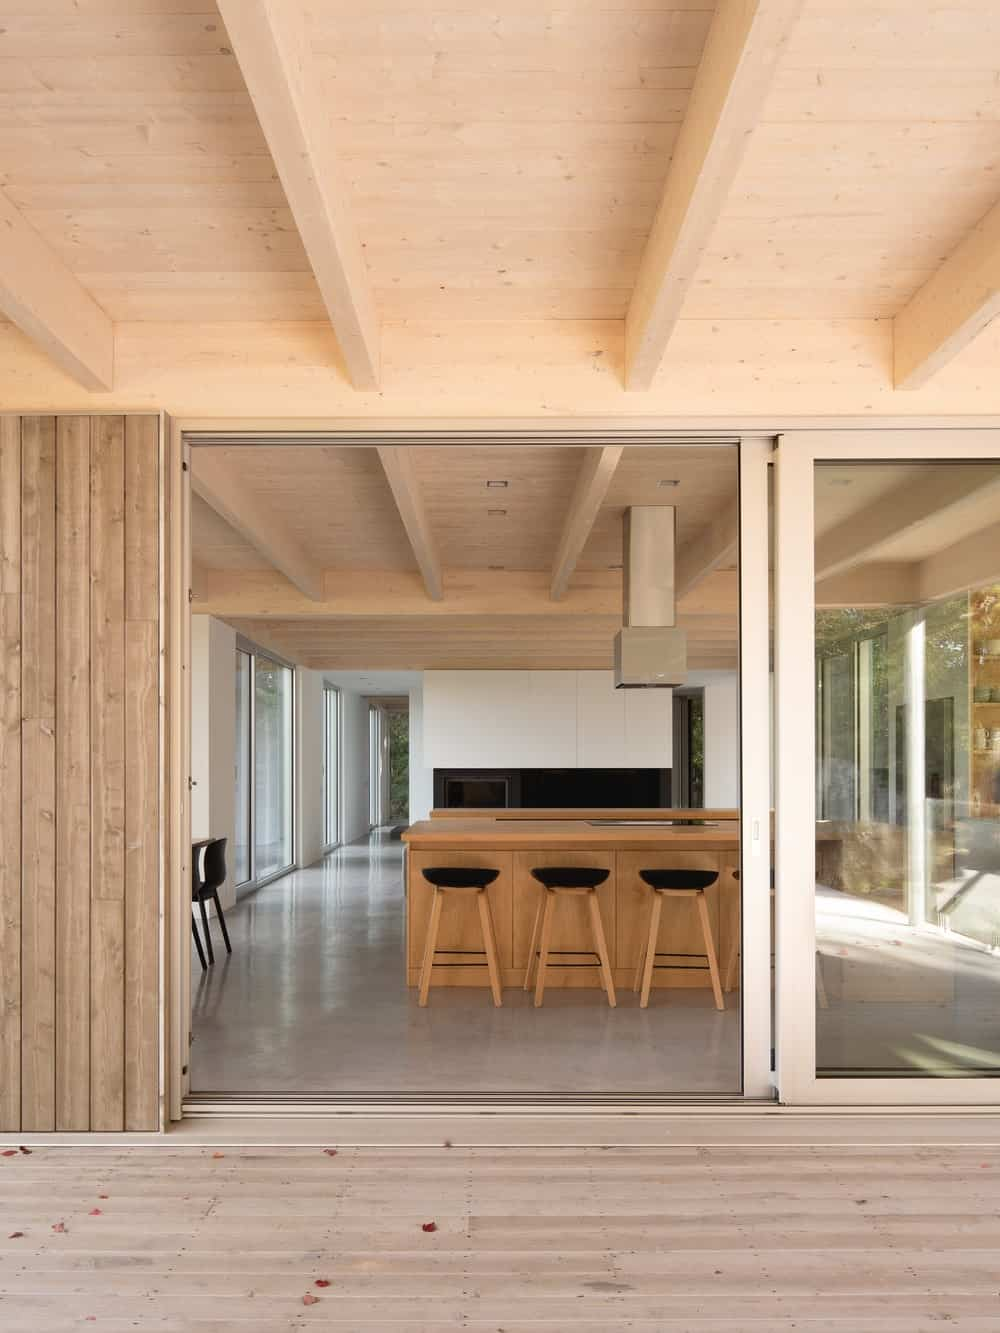 From the covered patio are the sliding doors that lead to the kitchen with a wooden beamed ceiling.